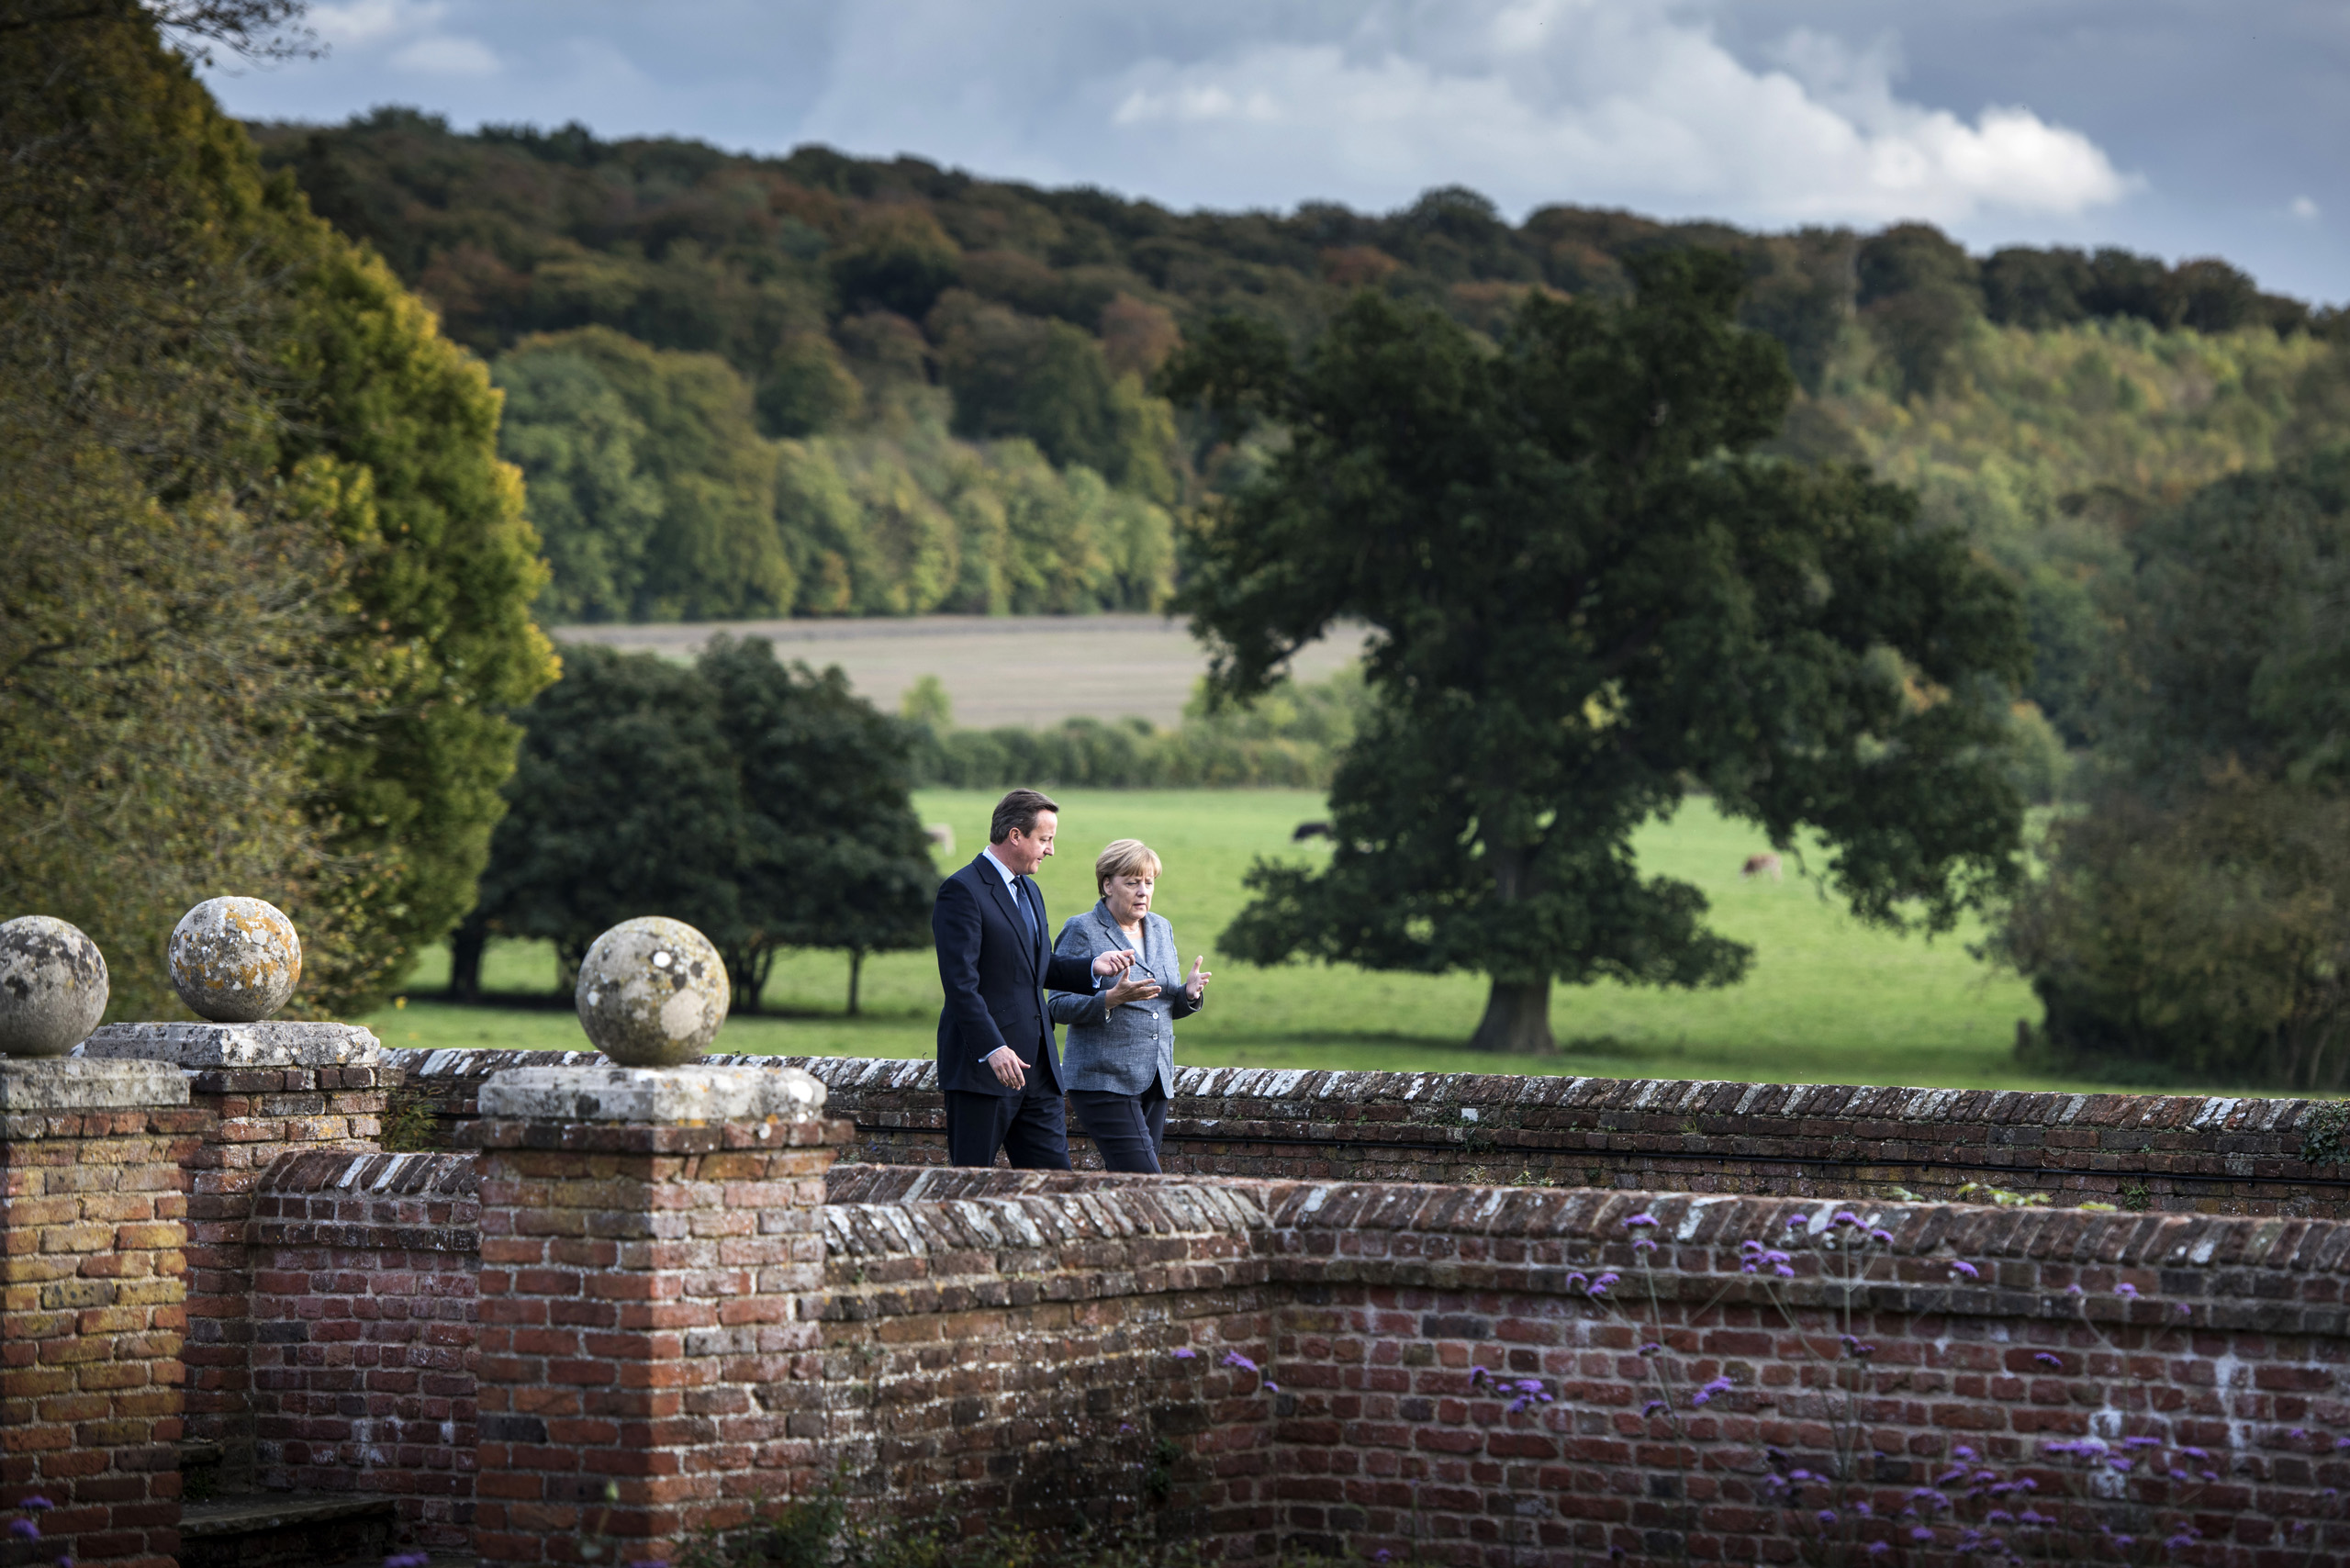 Federal Chancellor Angela Merkel and British Prime Minister David Cameron take a walk in the garden of Chequers Court, the country house retreat of U.K.'s Prime Minister at the beginning of the Chancellor's visit. Oct. 9, 2015.